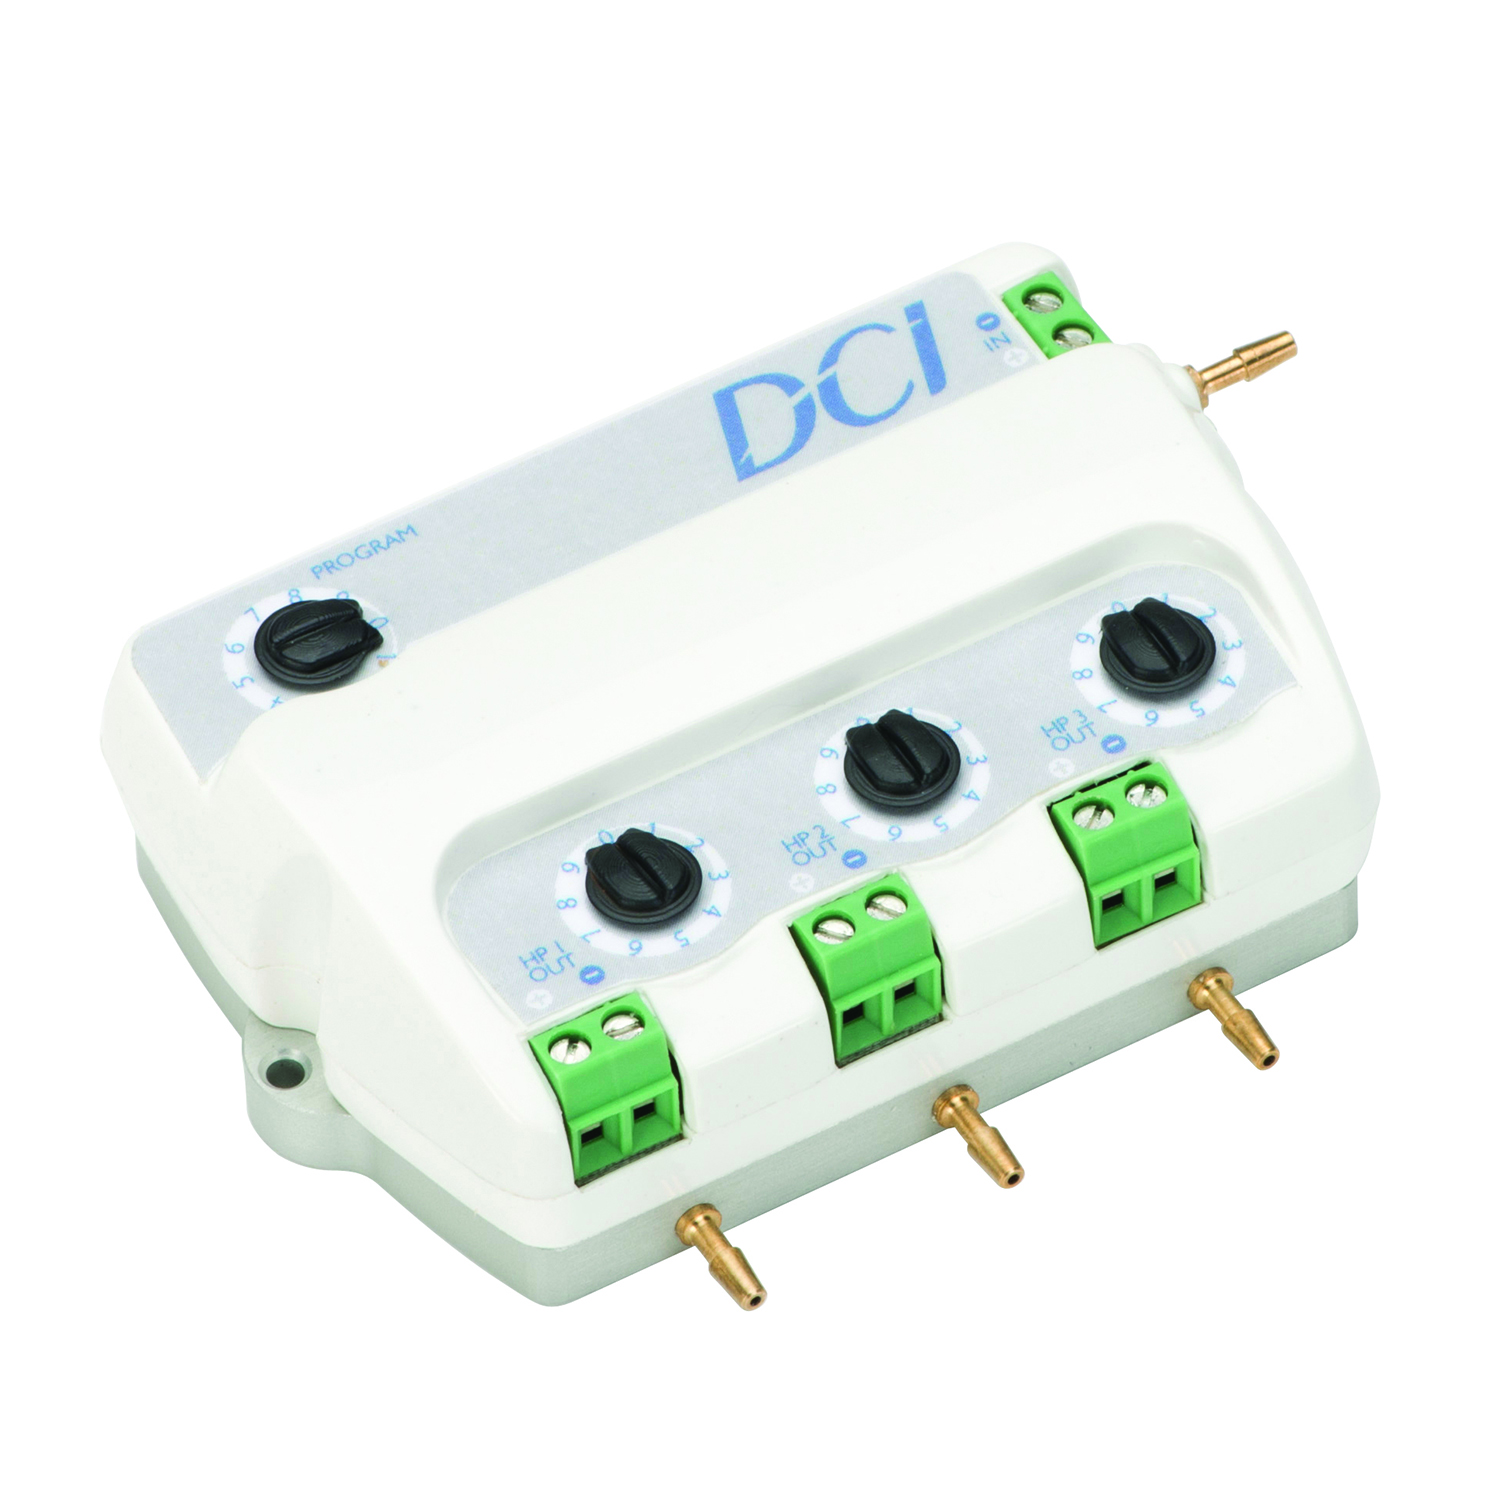 Discover DCI's new Power Optic System